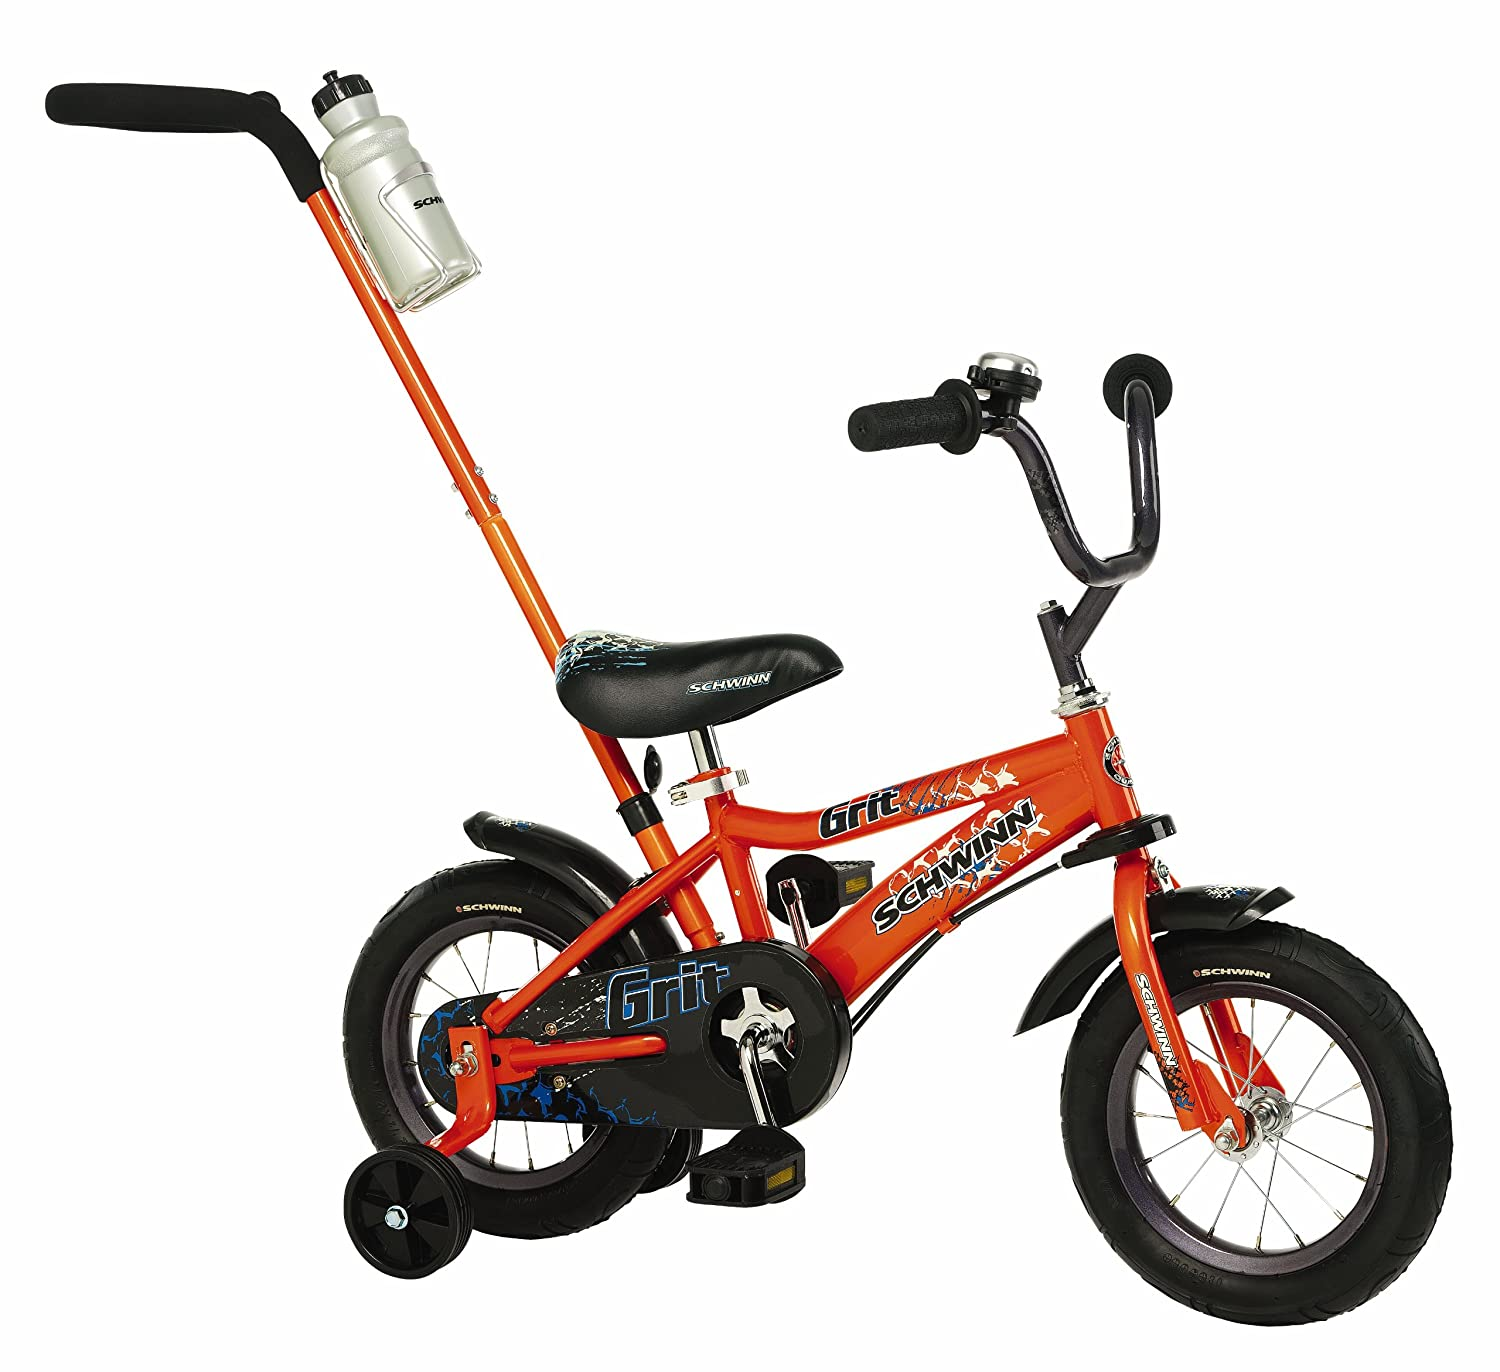 Bikes For Boys Age 5 Schwinn Boys Inch Grit